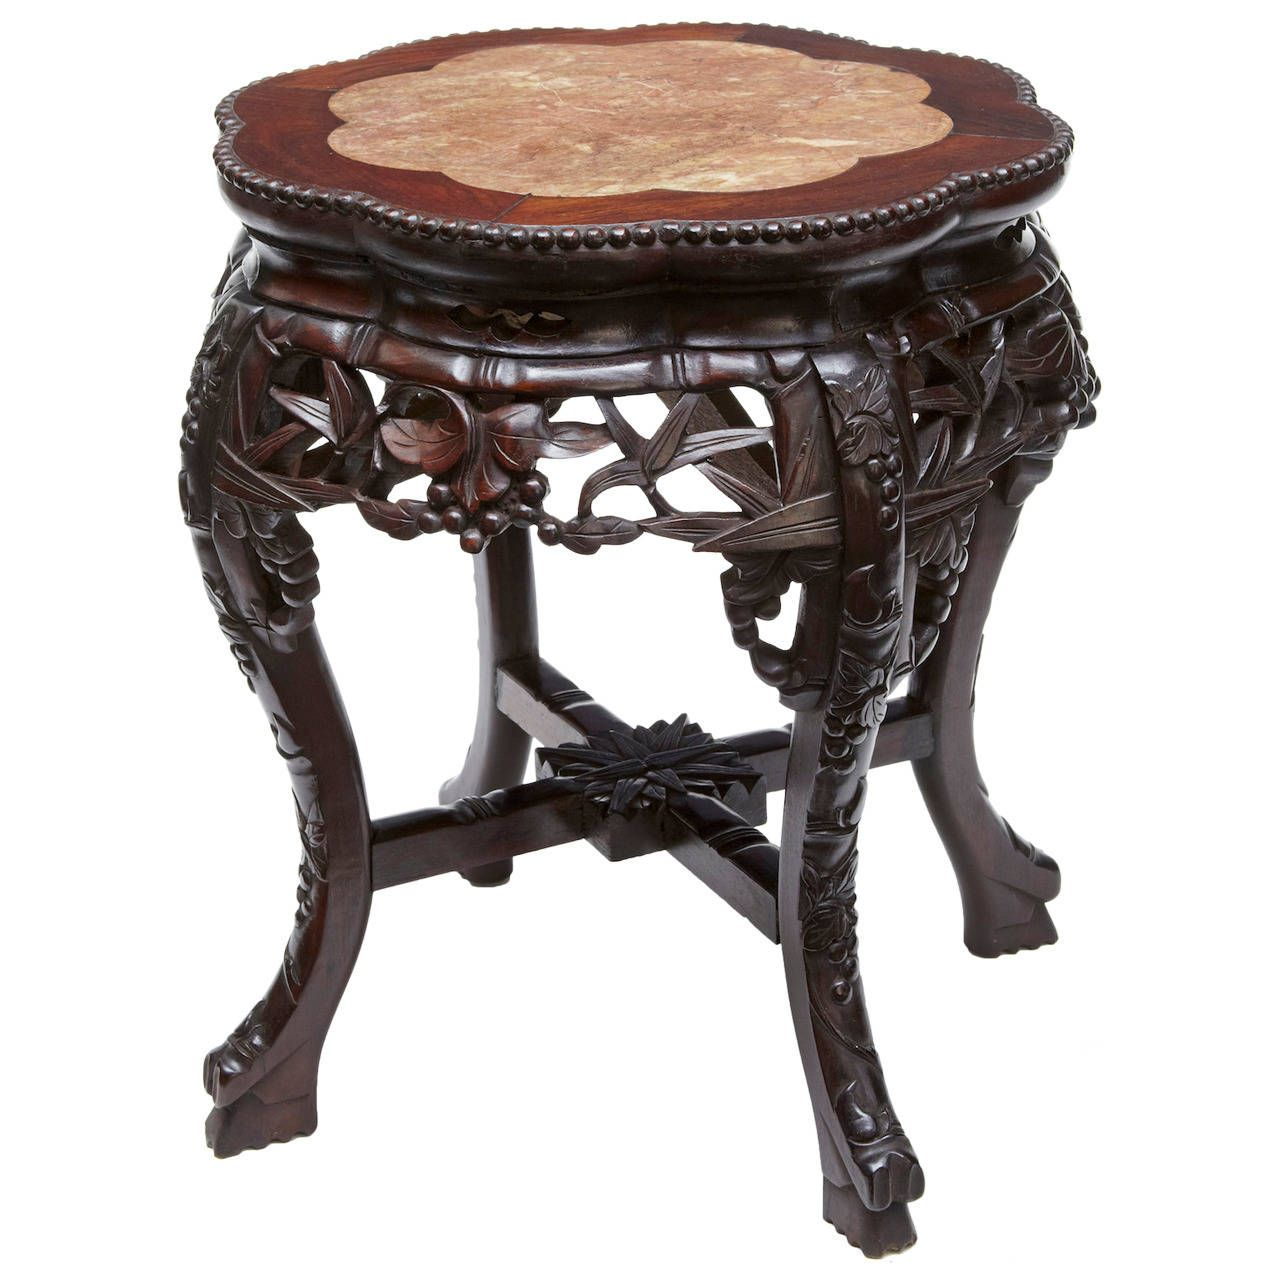 19th Century Chinese, Carved Hardwood Plant Stand Table